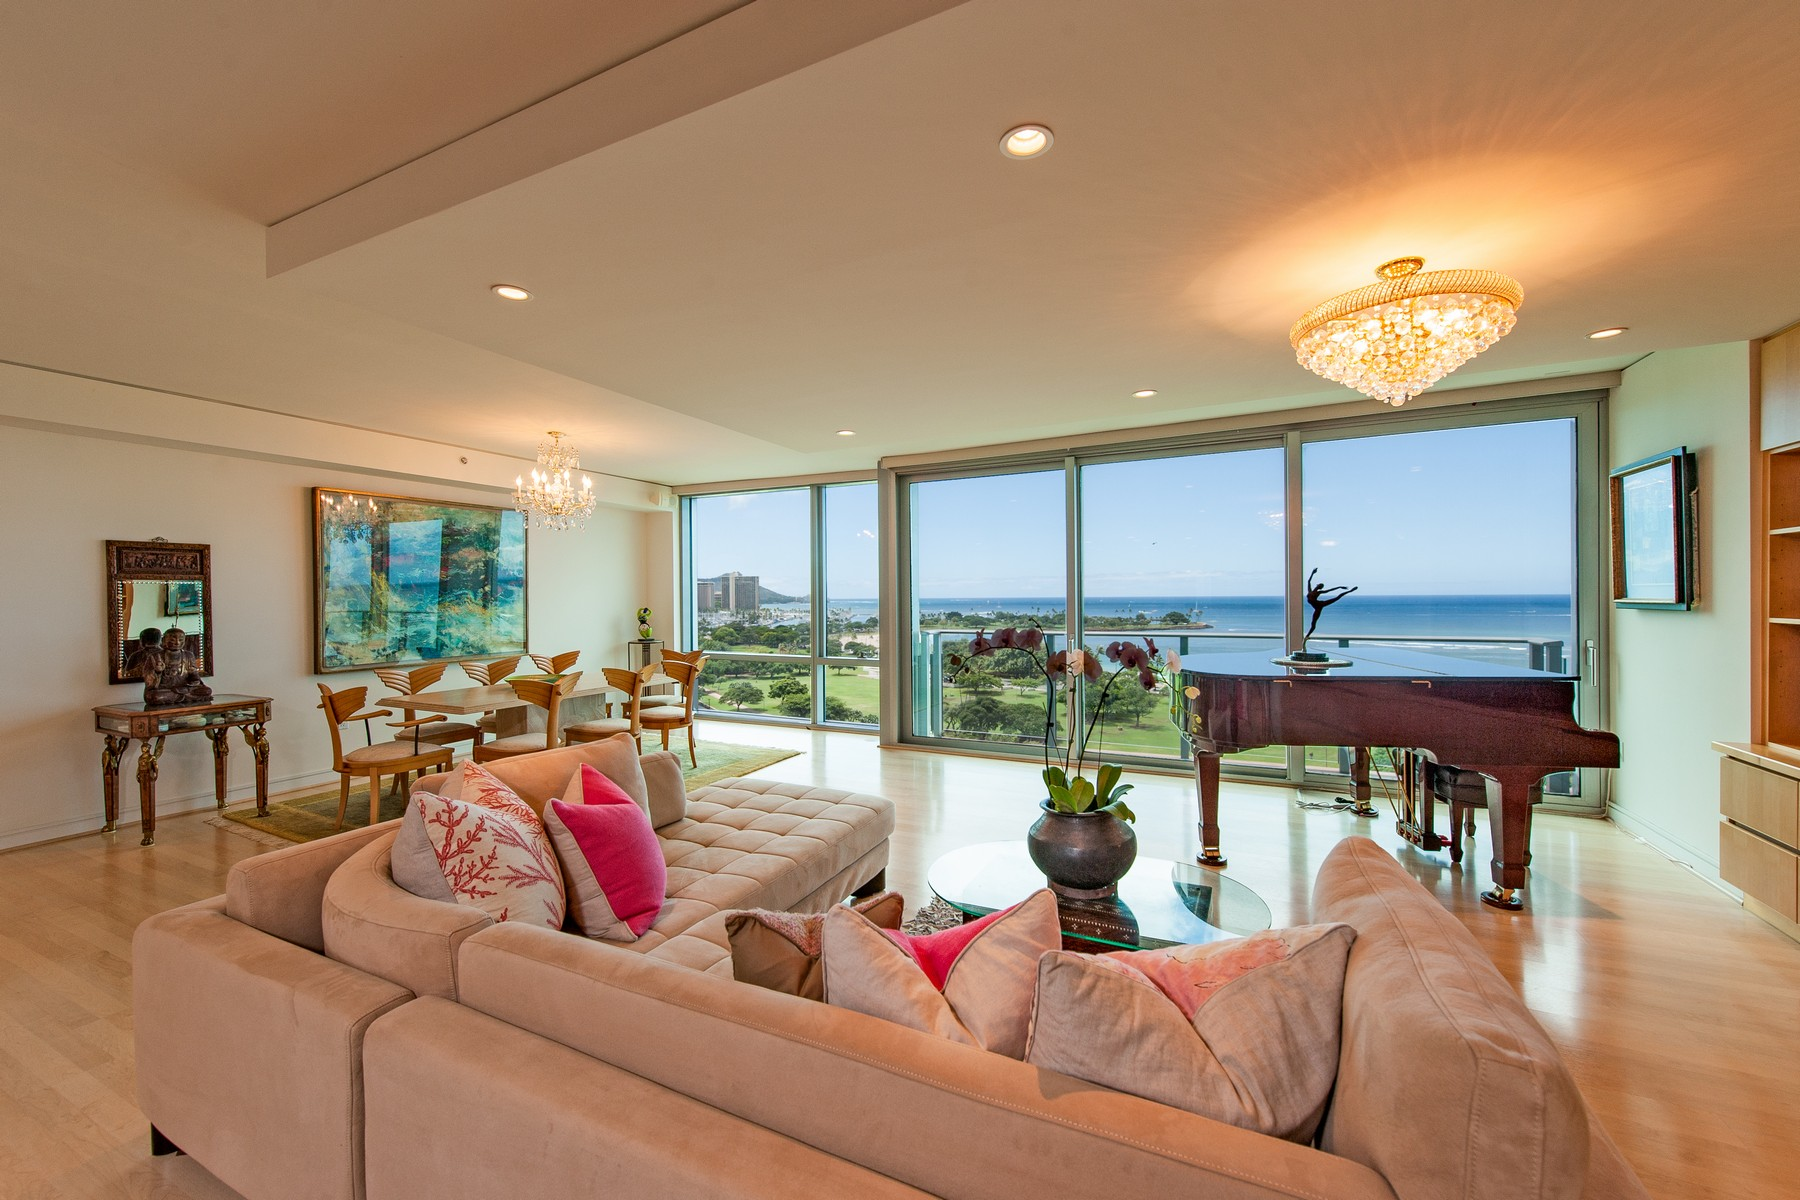 Condominium for Sale at Spectacular Ocean View Condo 1288 Ala Moana Blvd #12E & 12F Honolulu, Hawaii 96814 United States